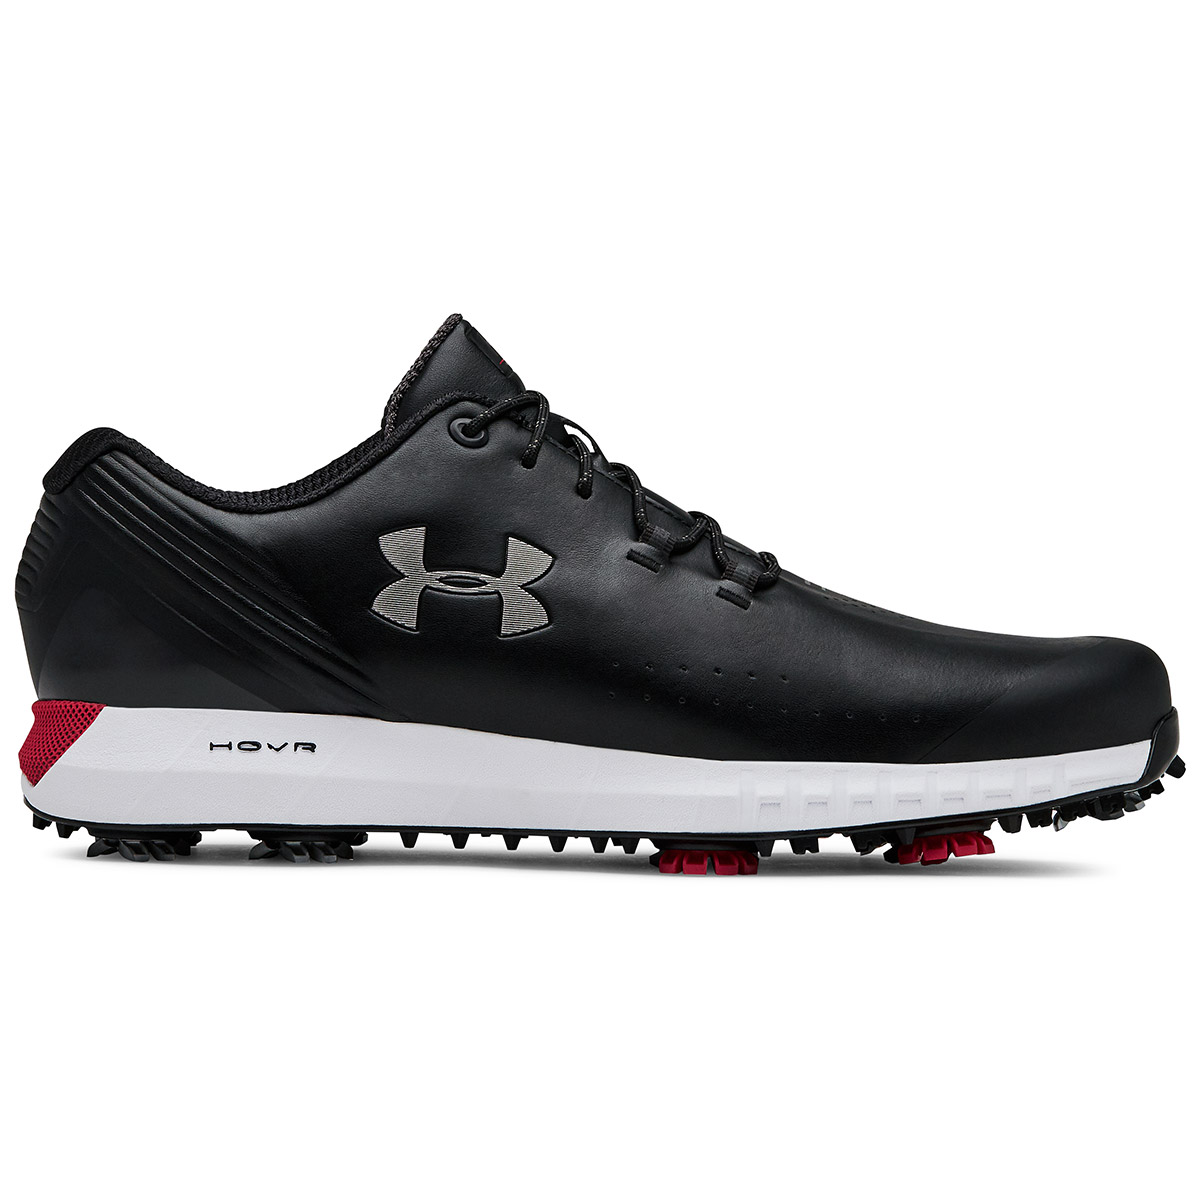 adf2d5e362f7f5 Under Armour HOVR Drive Shoes from american golf